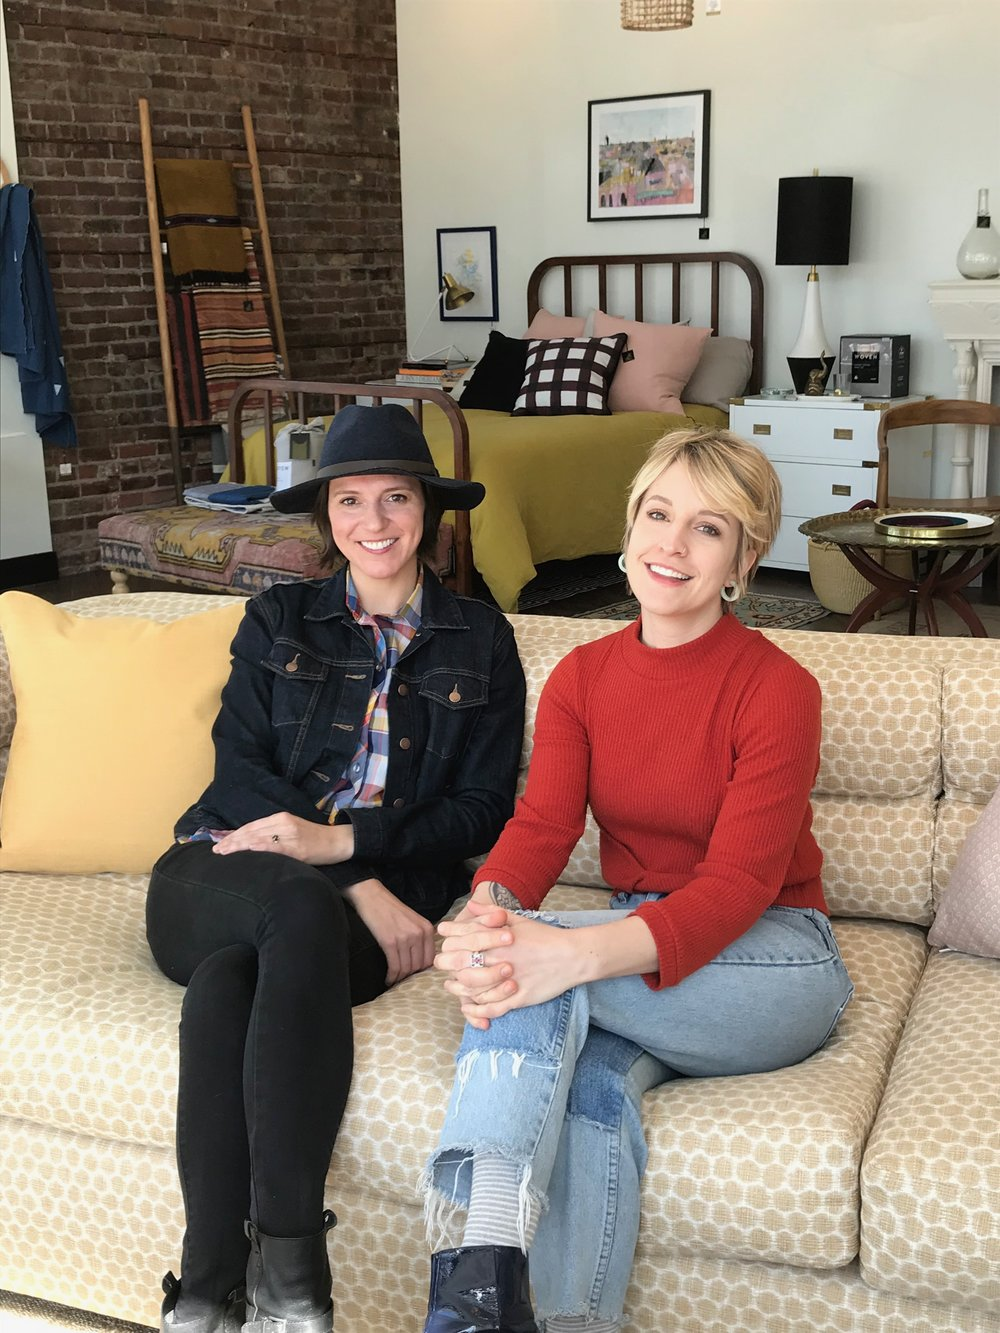 Birdhouse founder and owner Jessica McKay (left) with designer and showroom manager Cora Coppock.